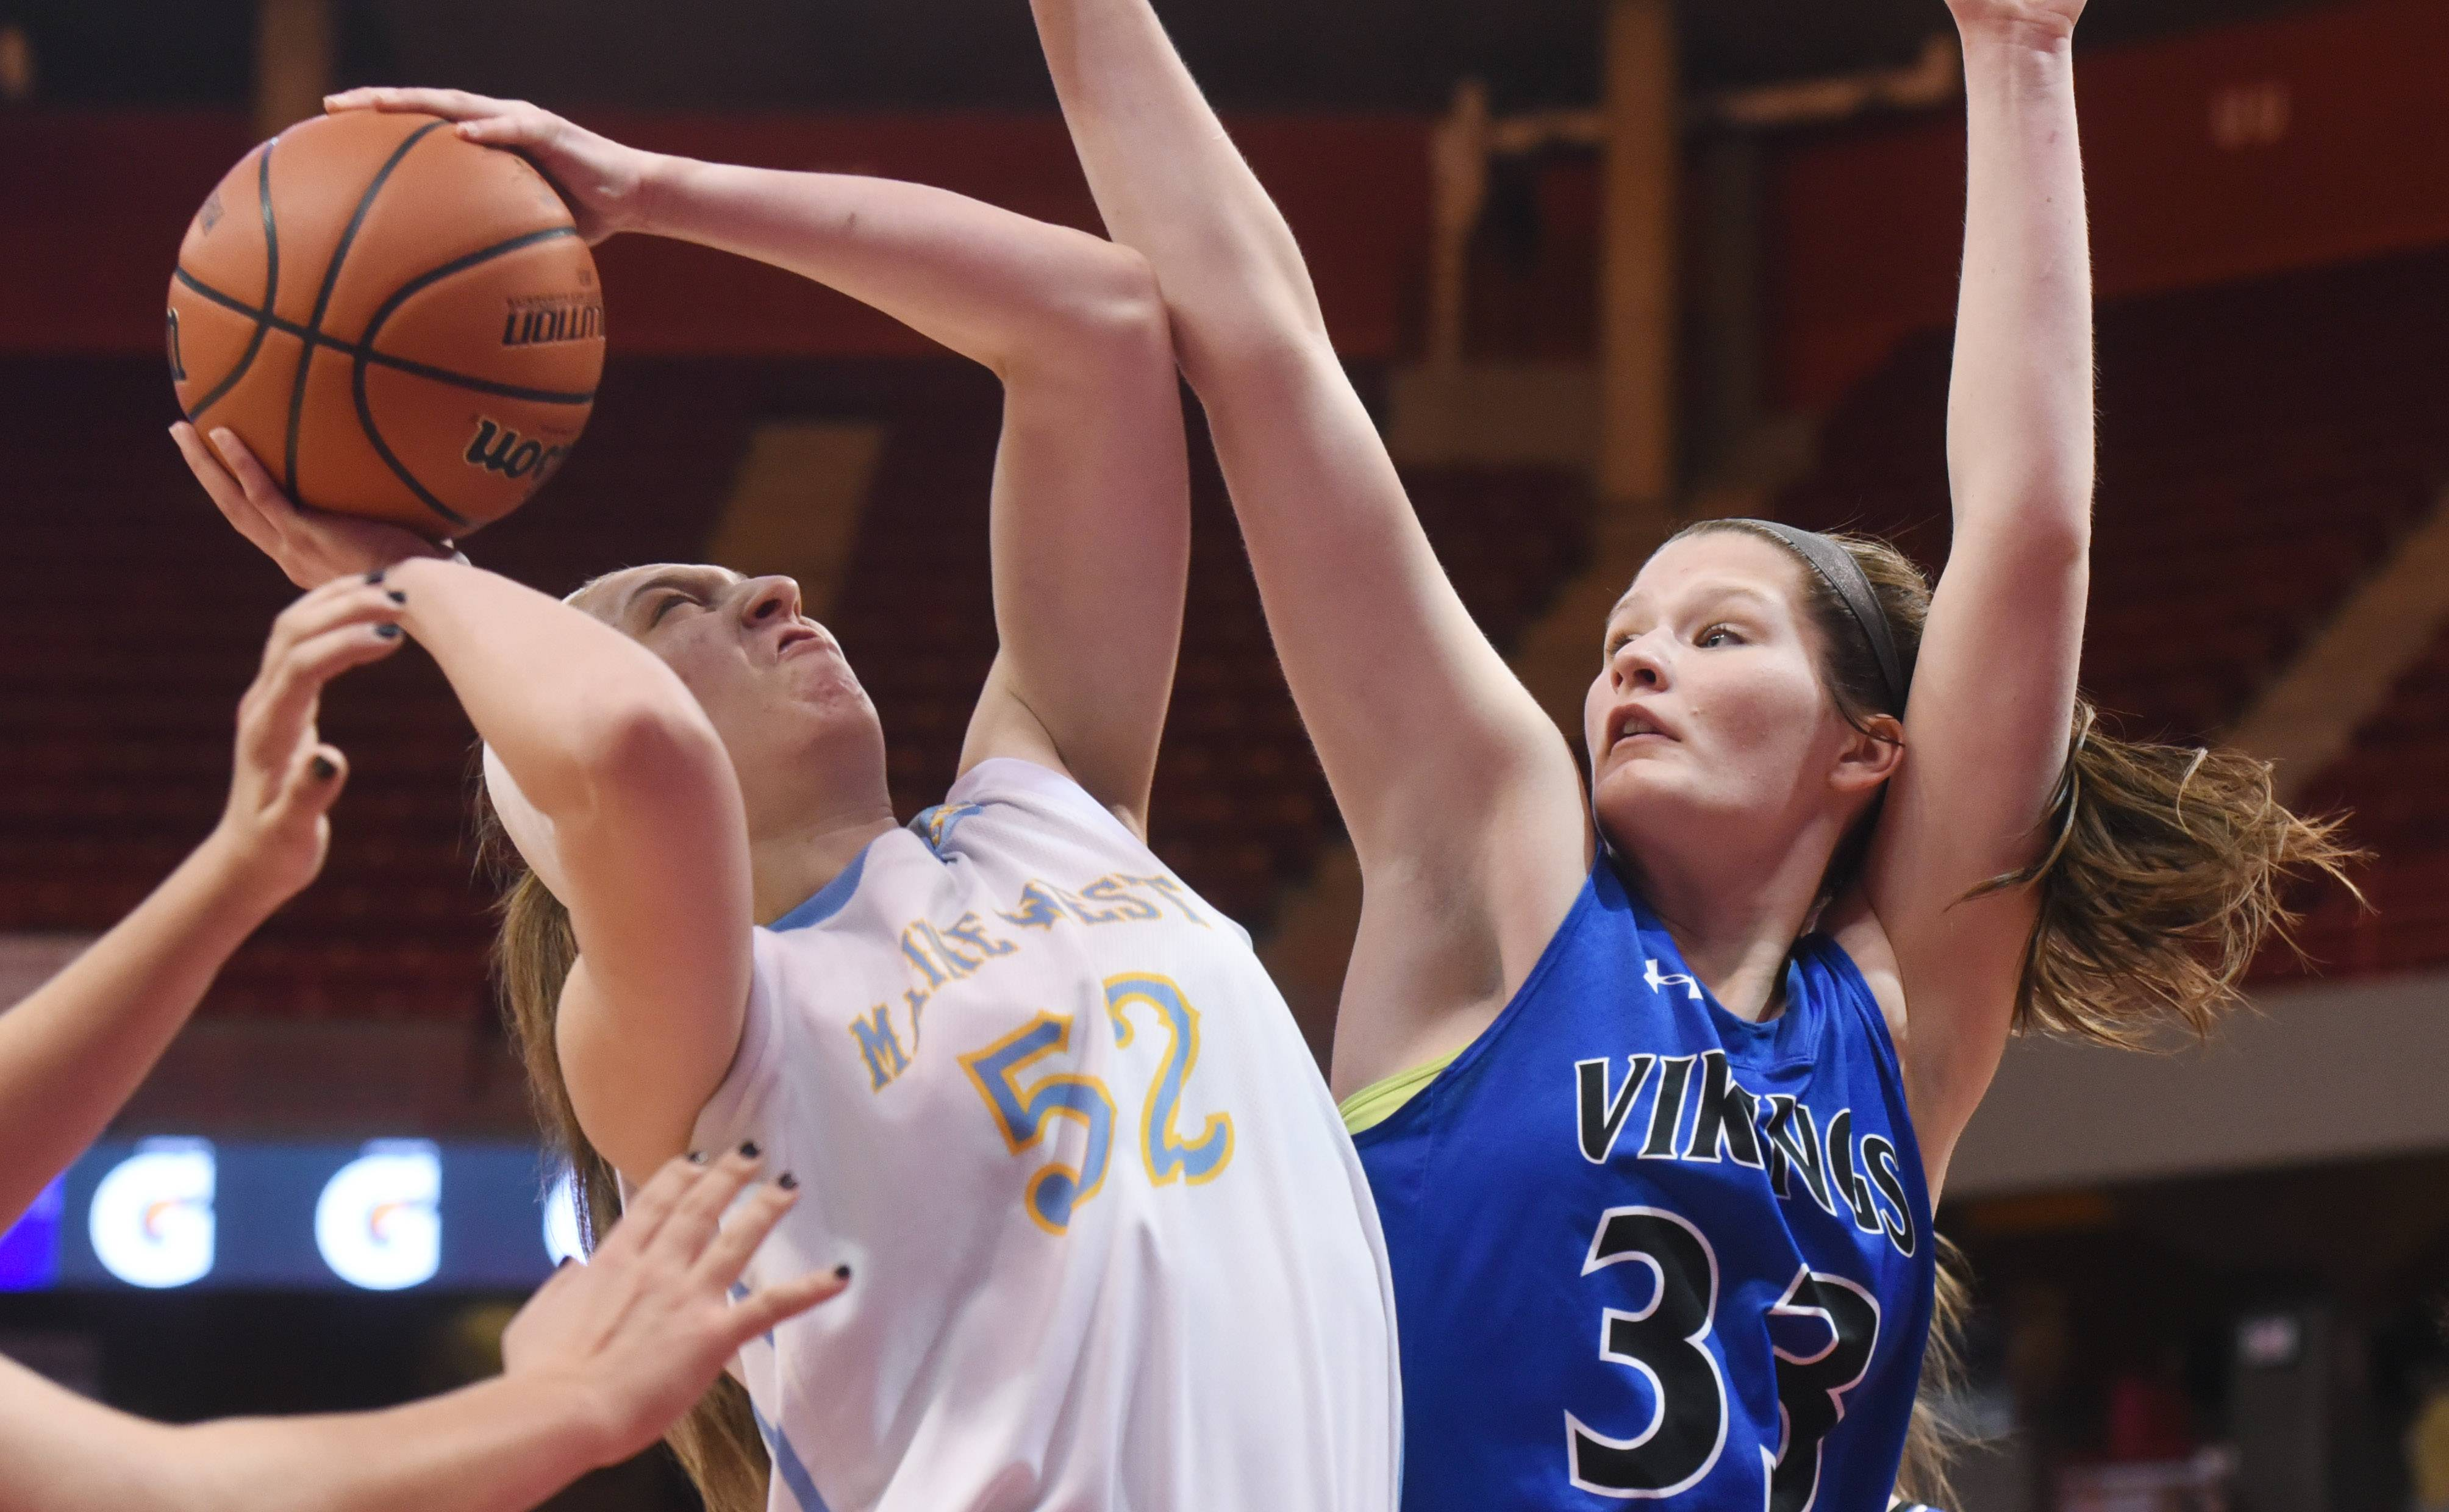 Maine West's Jessica Riedl, left, battles under the basket with Geneva's Madison Mallory during the Class 4A girls basketball semifinals at Redbird Arena in Normal Friday.